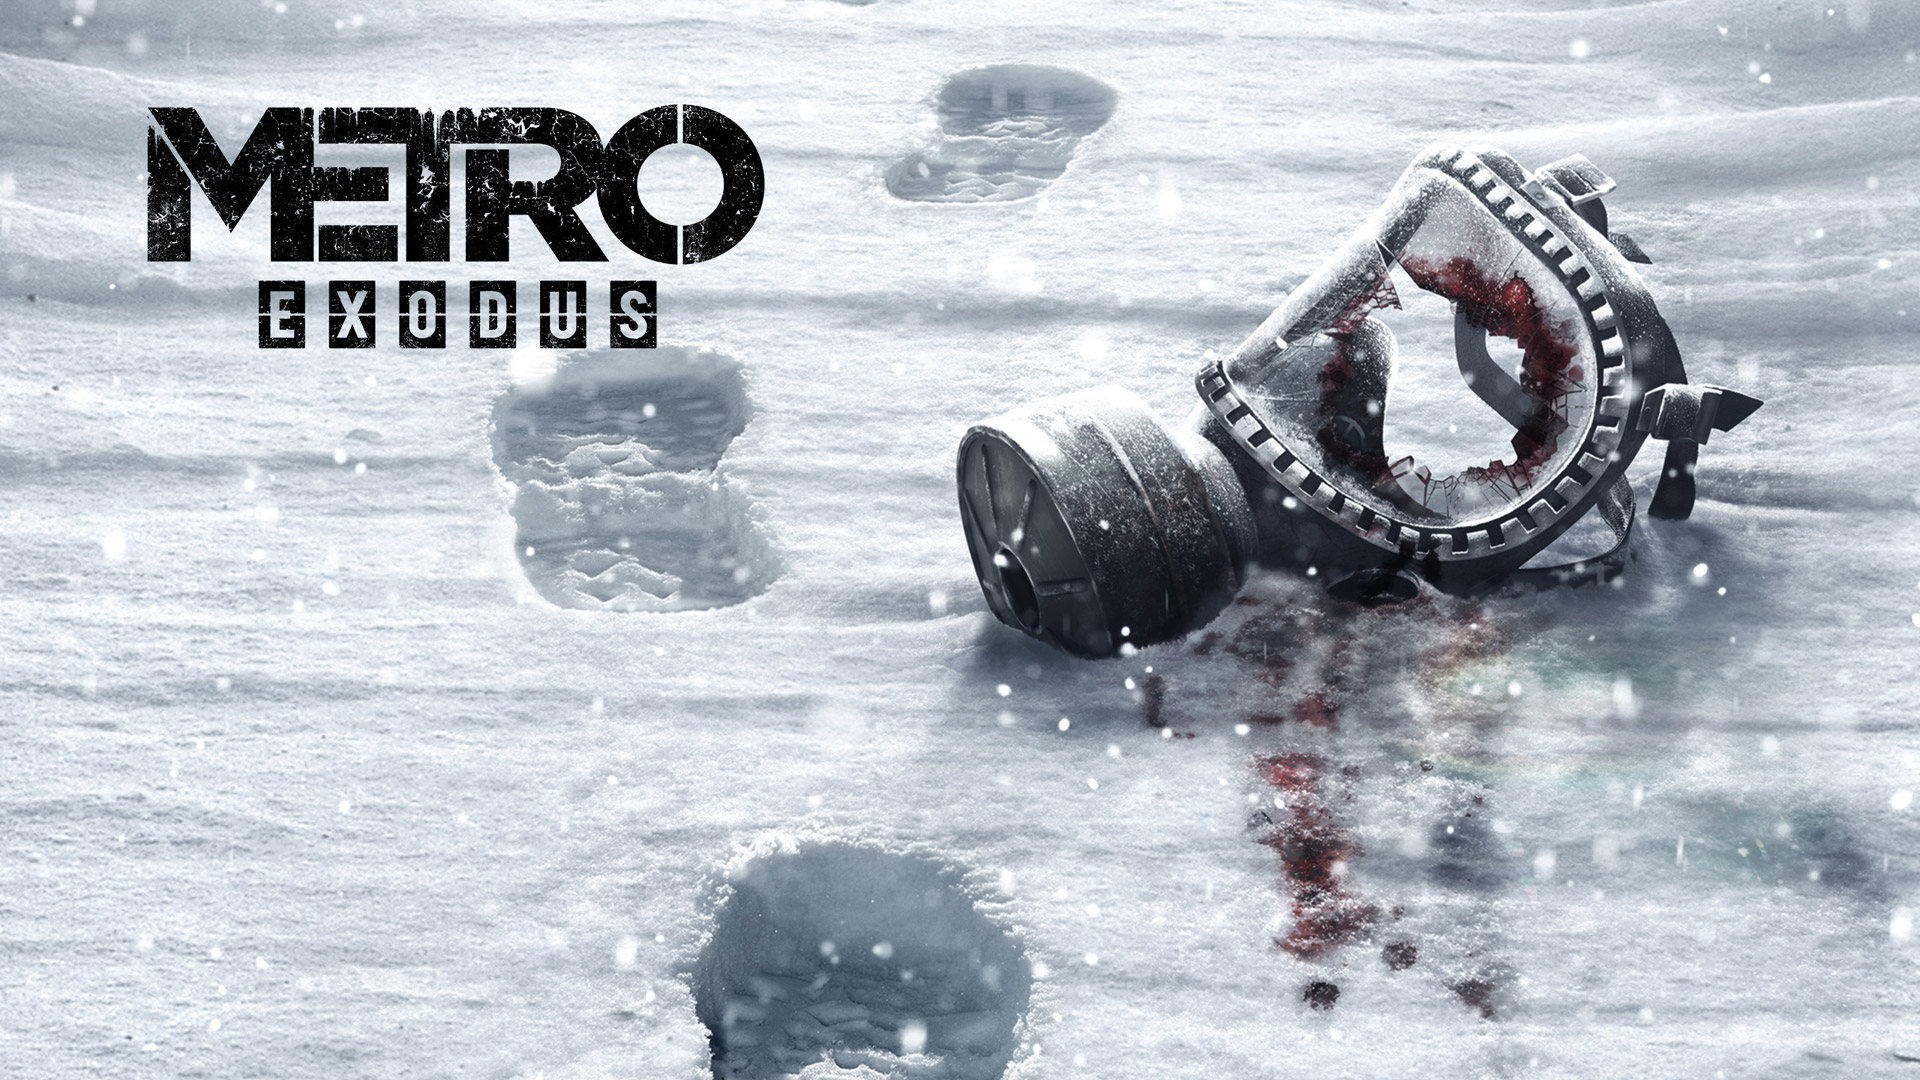 Metro Exodus won't come to Steam at Launch, thanks to Epic Game Store